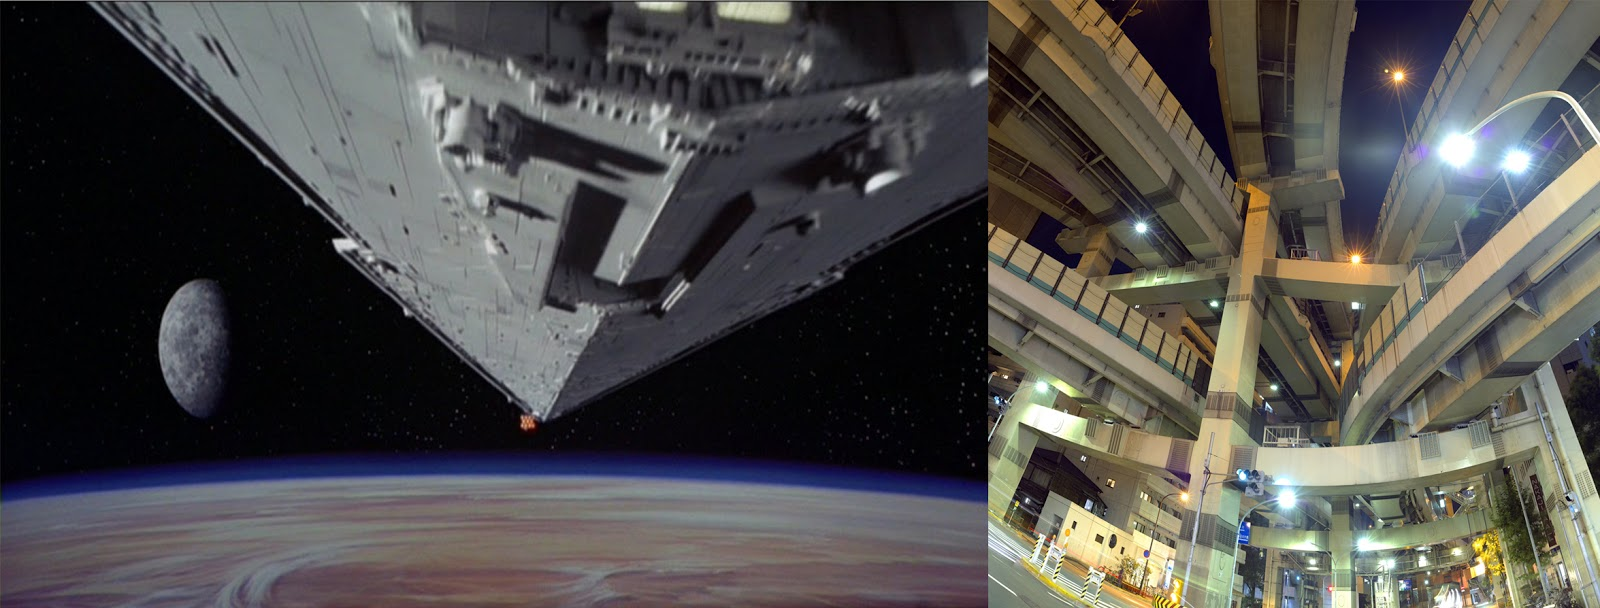 Star Wars Modern Thoughts On Episode Vii Delirious Coruscant